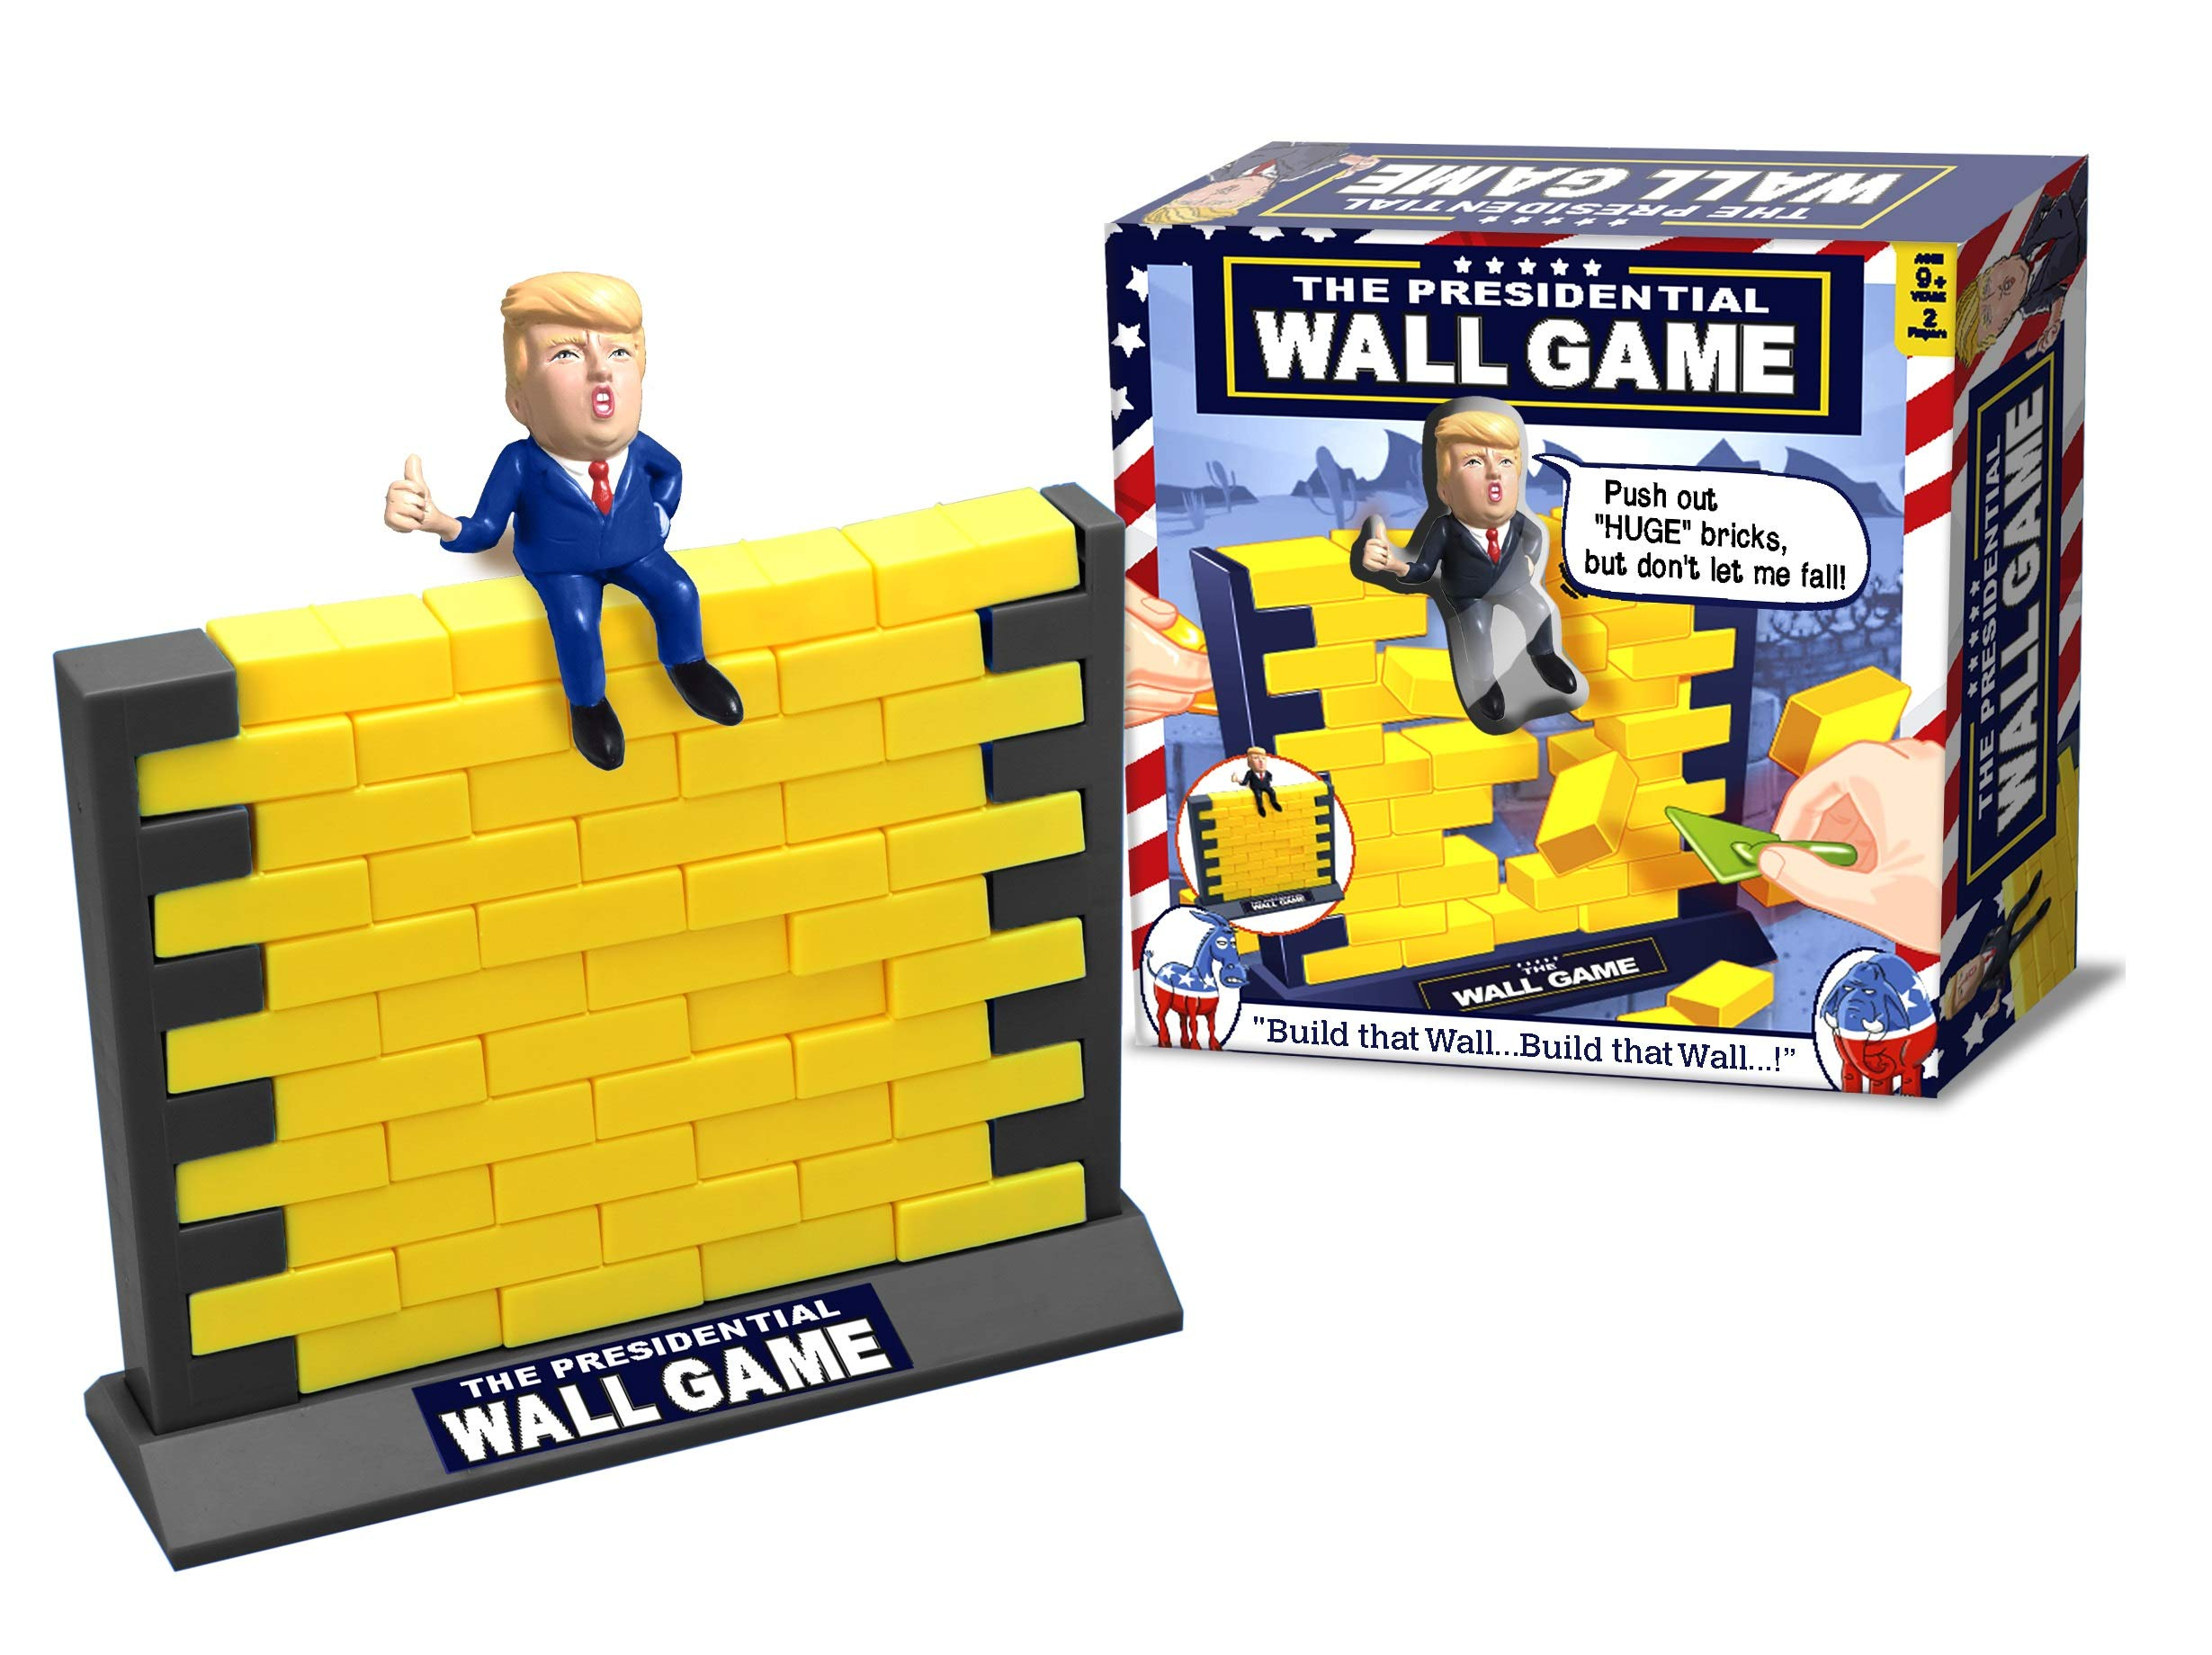 The-Trump-Presidential-Wall-Game-MAGA